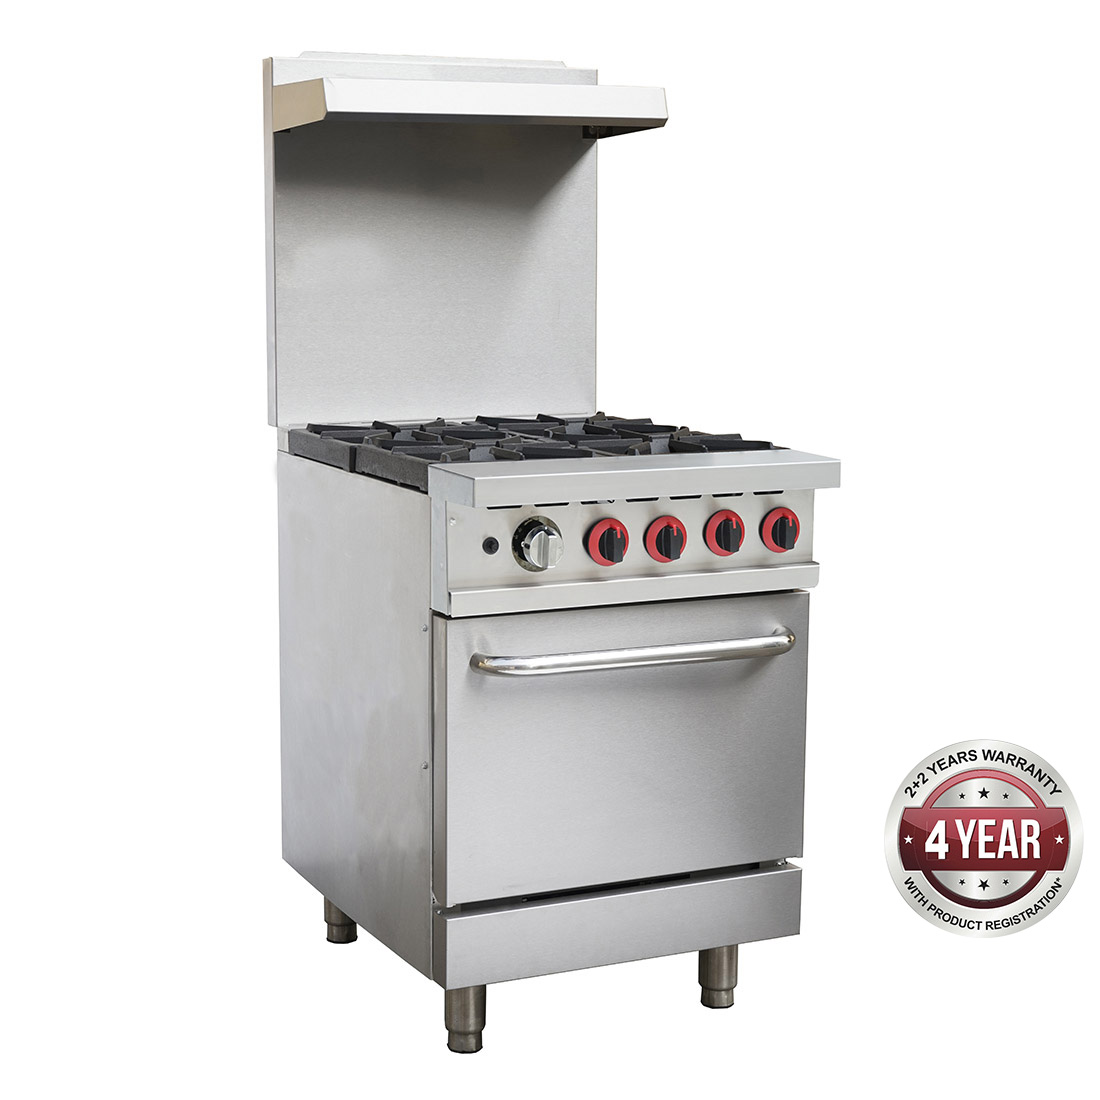 GBS4TLPG Gasmax 4 Burner With Oven Flame Failure